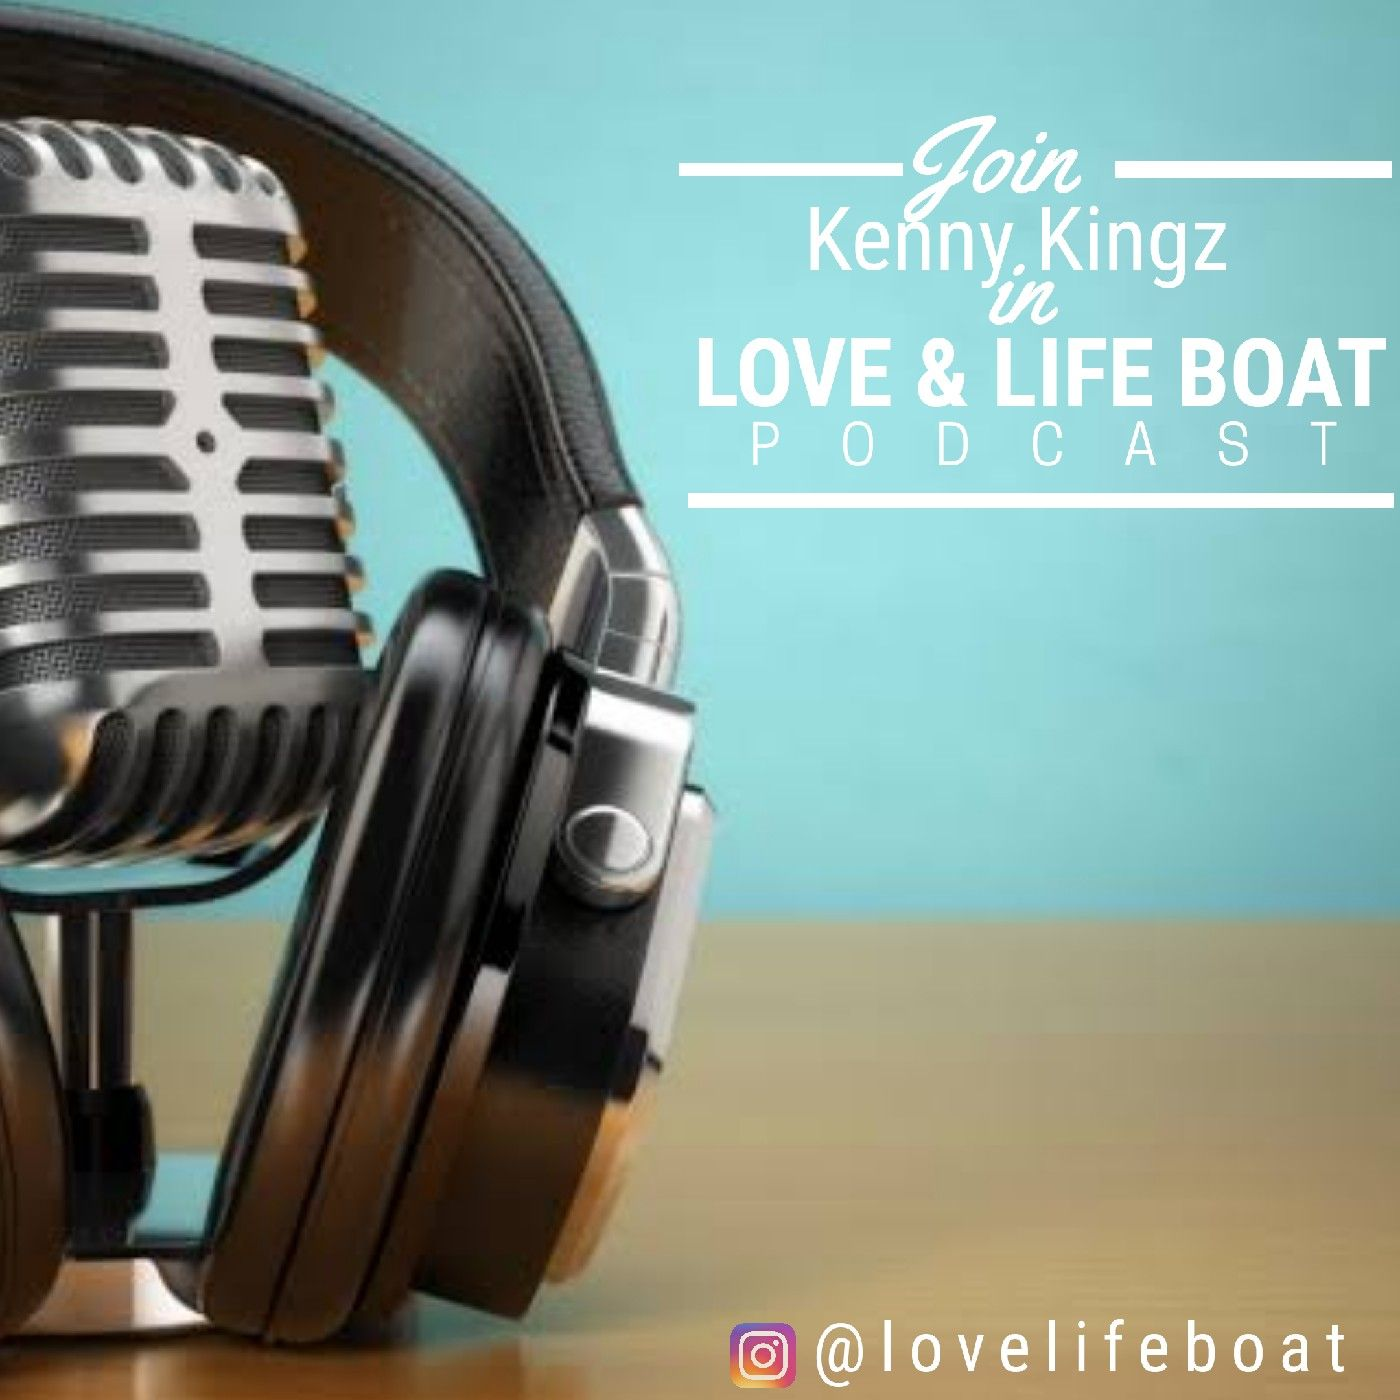 Love & Life Boat podcast